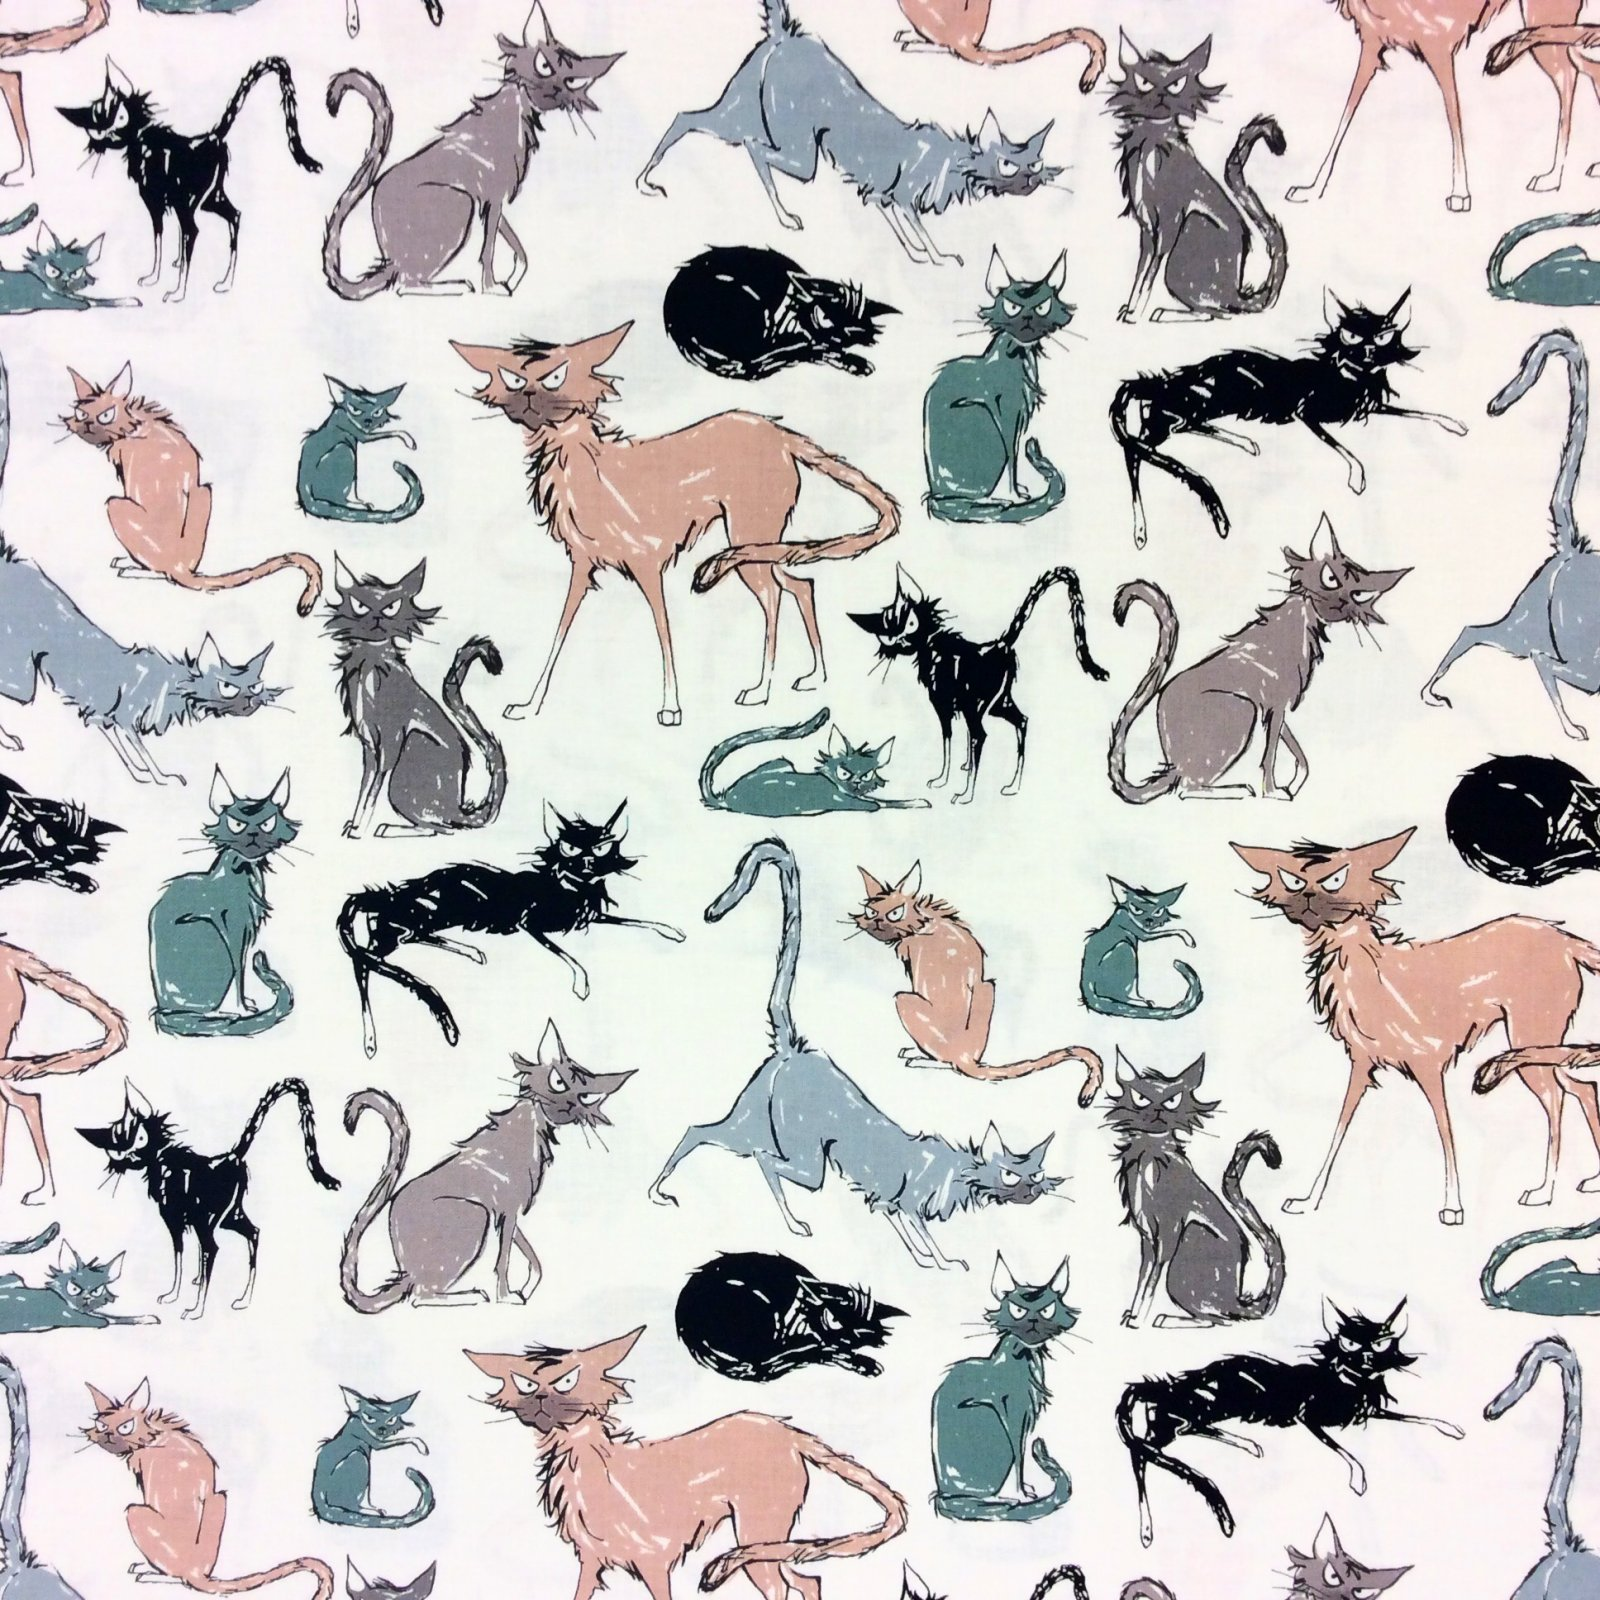 Ghastly Black Cats Superstitious Haunted 9 Lives Scary Cotton Quilt Fabric A200